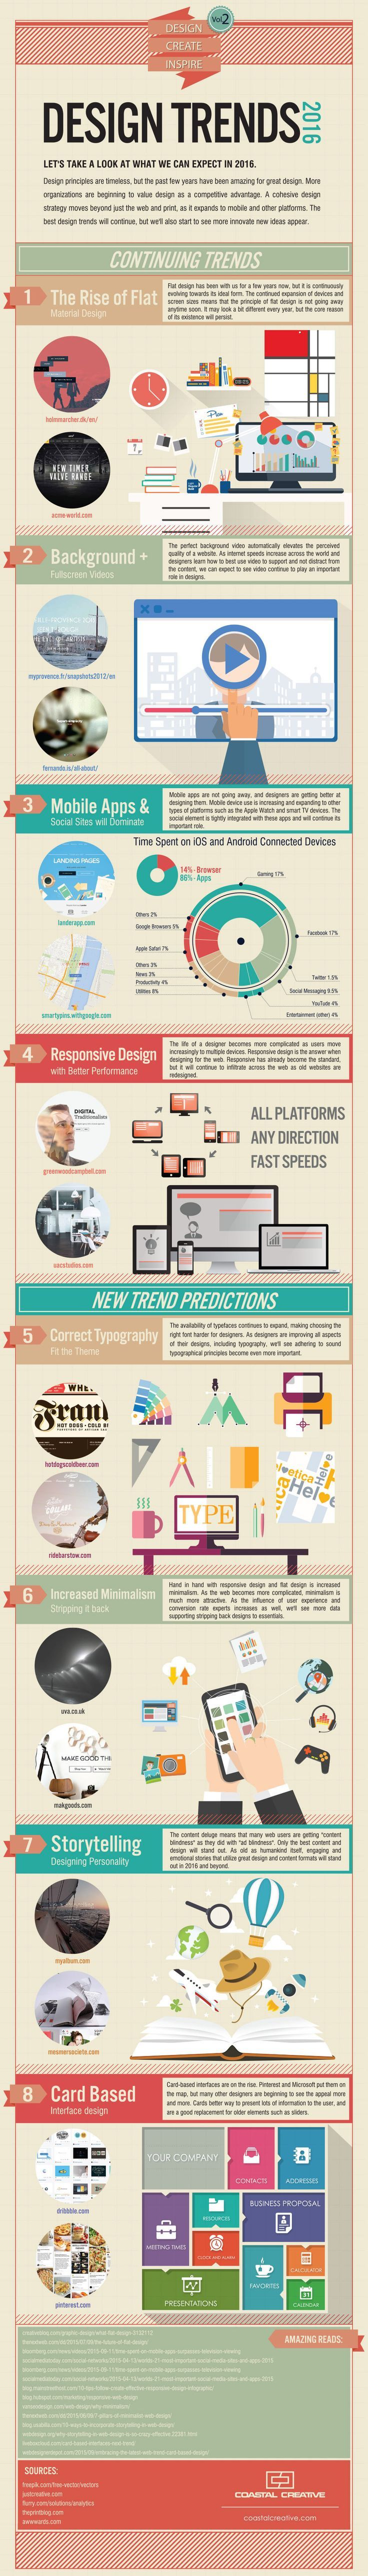 [INFOGRAPHIC] 8 Web Design Trends That Are Bound to Be Huge in 2016—Flat; Backgrounds; Mobile; Responsive; Type; Minimalism; Storytelling; Cards; Details>